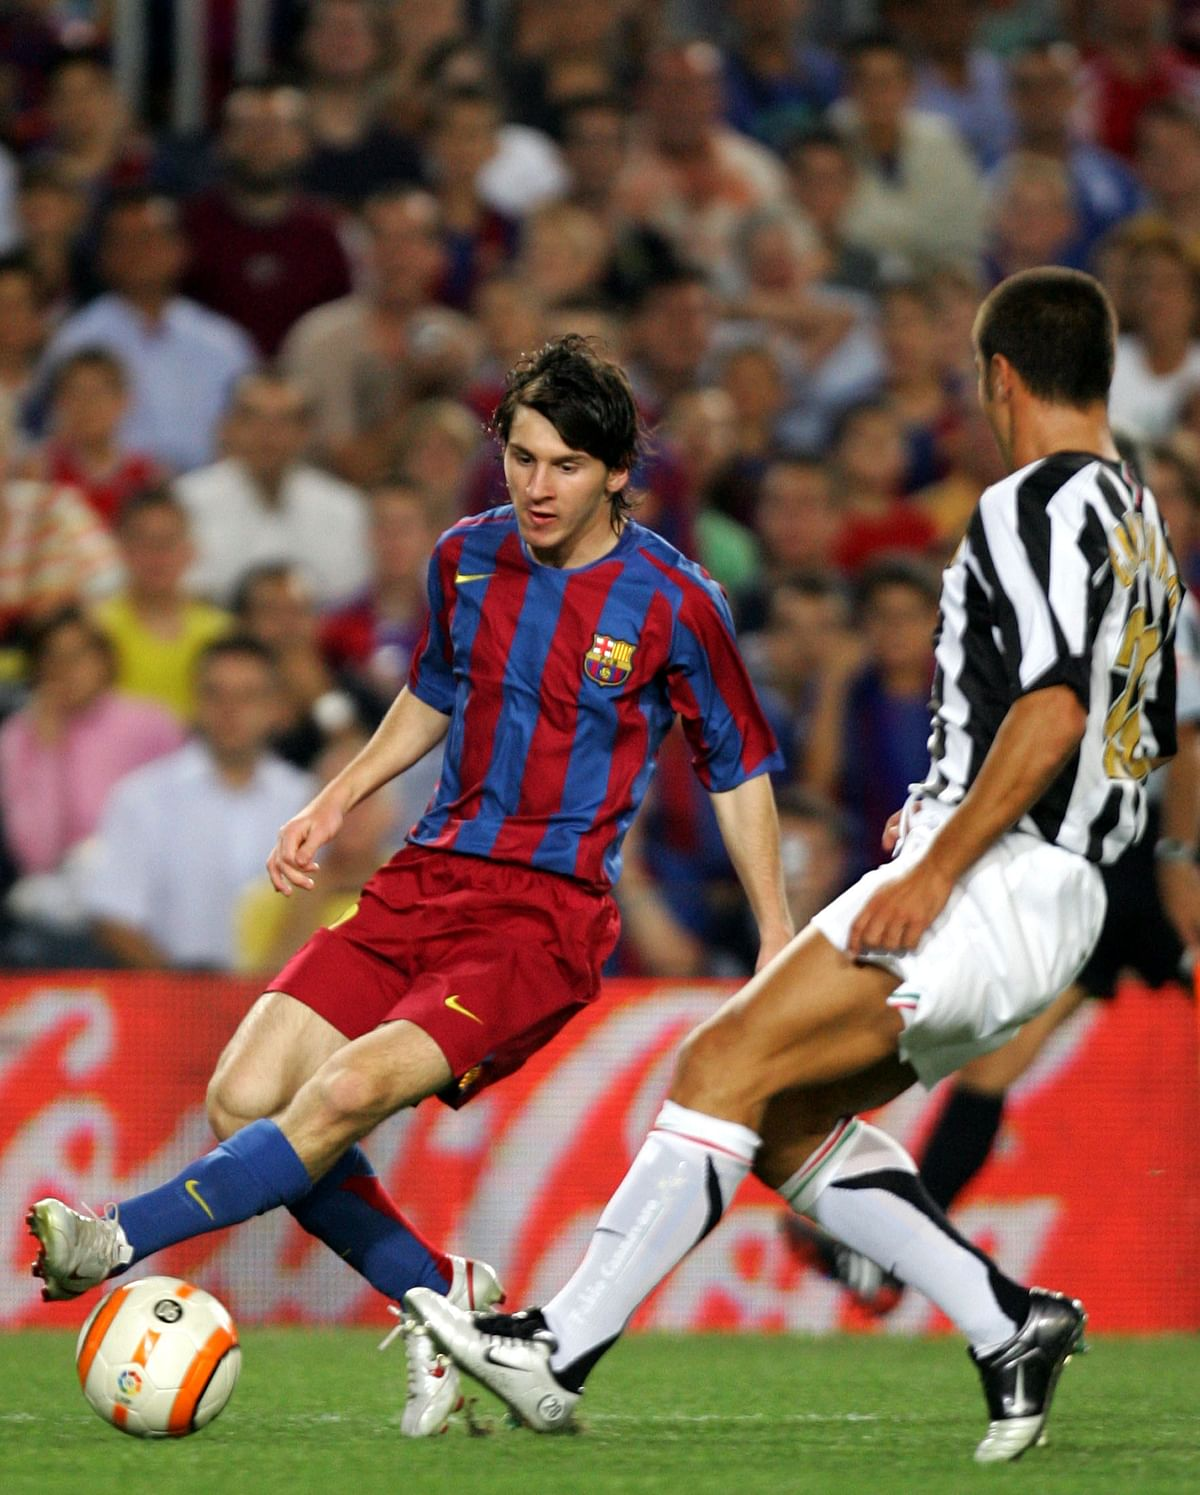 Barcelona's Leo Messi (L) of Argentina withJuventus' Fabio Cannavaro during a friendly soccer match for the Joan Gamper Trophy in Barcelona, Spain August 24, 2005. (Photo: Reuters)